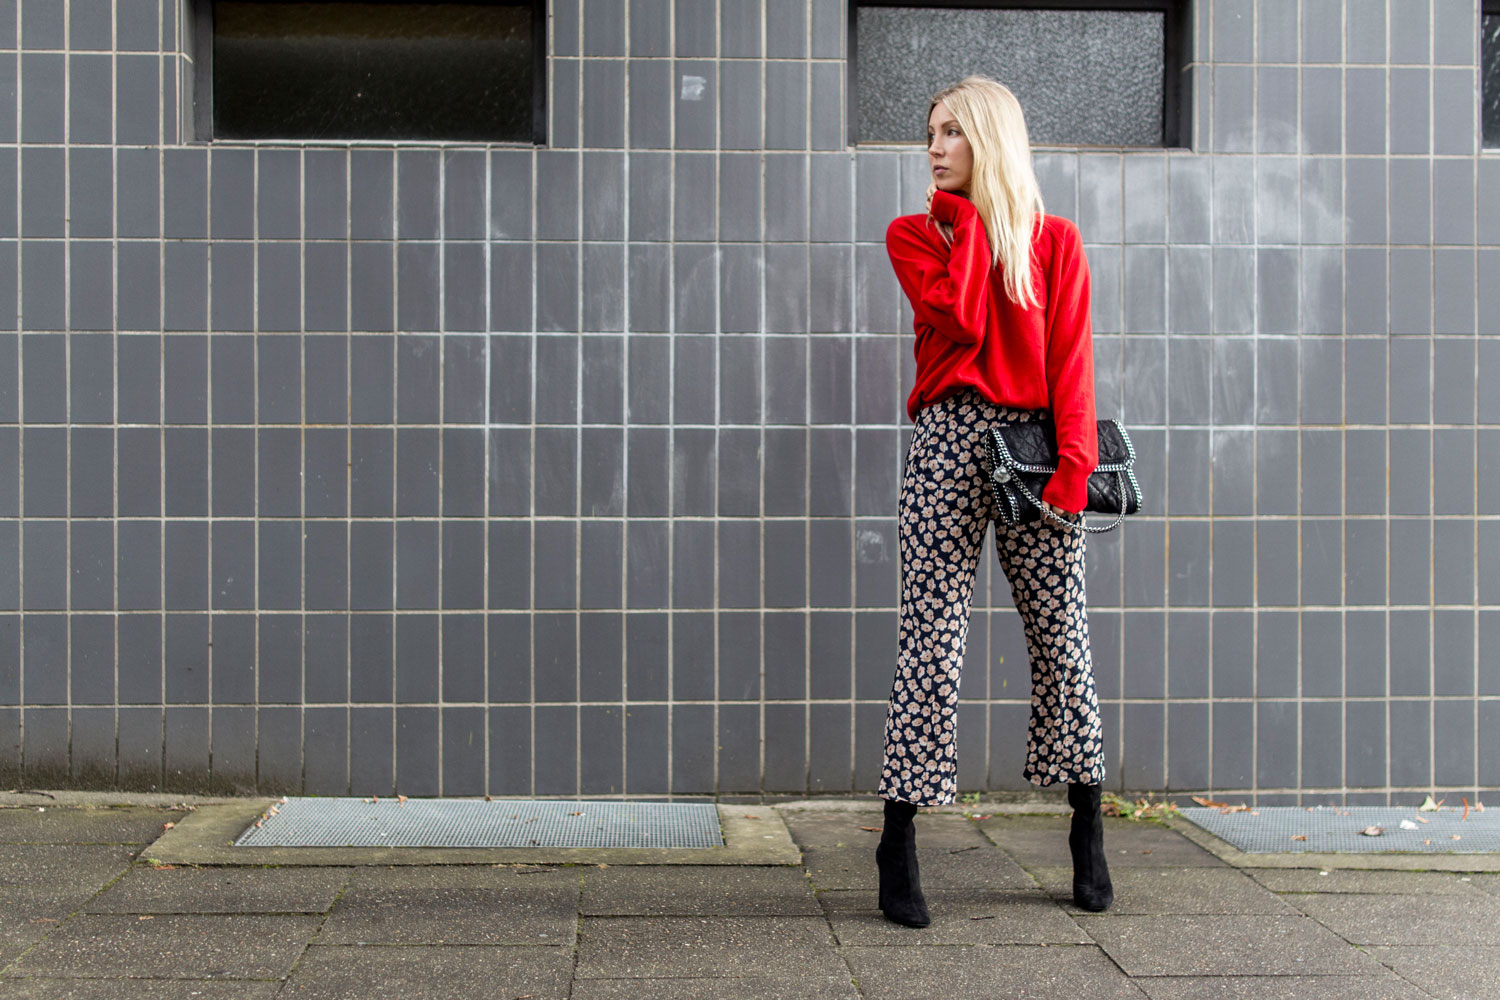 Maska, Pullover, Rot, red, Fall2017, Strick, Ganni, Pants, StellaMcCartney, ootd, lotd, Look, Outfit, Streetstyle, Bloggerstyle, Fashion, Eco, Ethical, Fair, Blog, stryleTZ